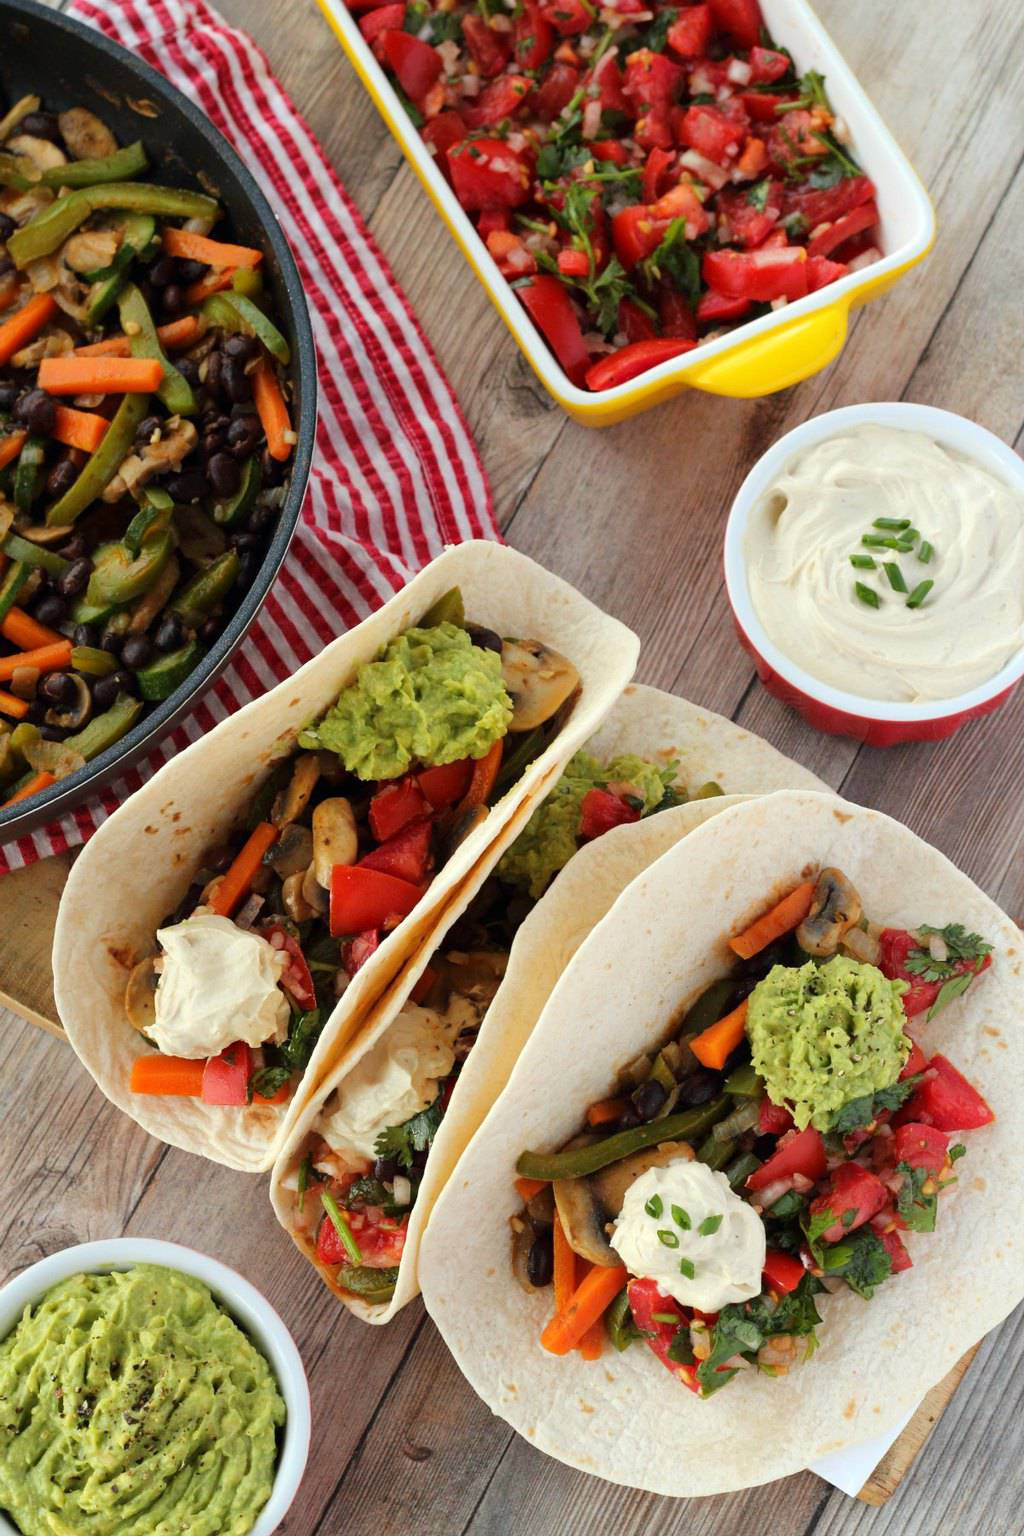 Veggie Fajitas topped with guacamole and vegan sour cream and tomato salsa.